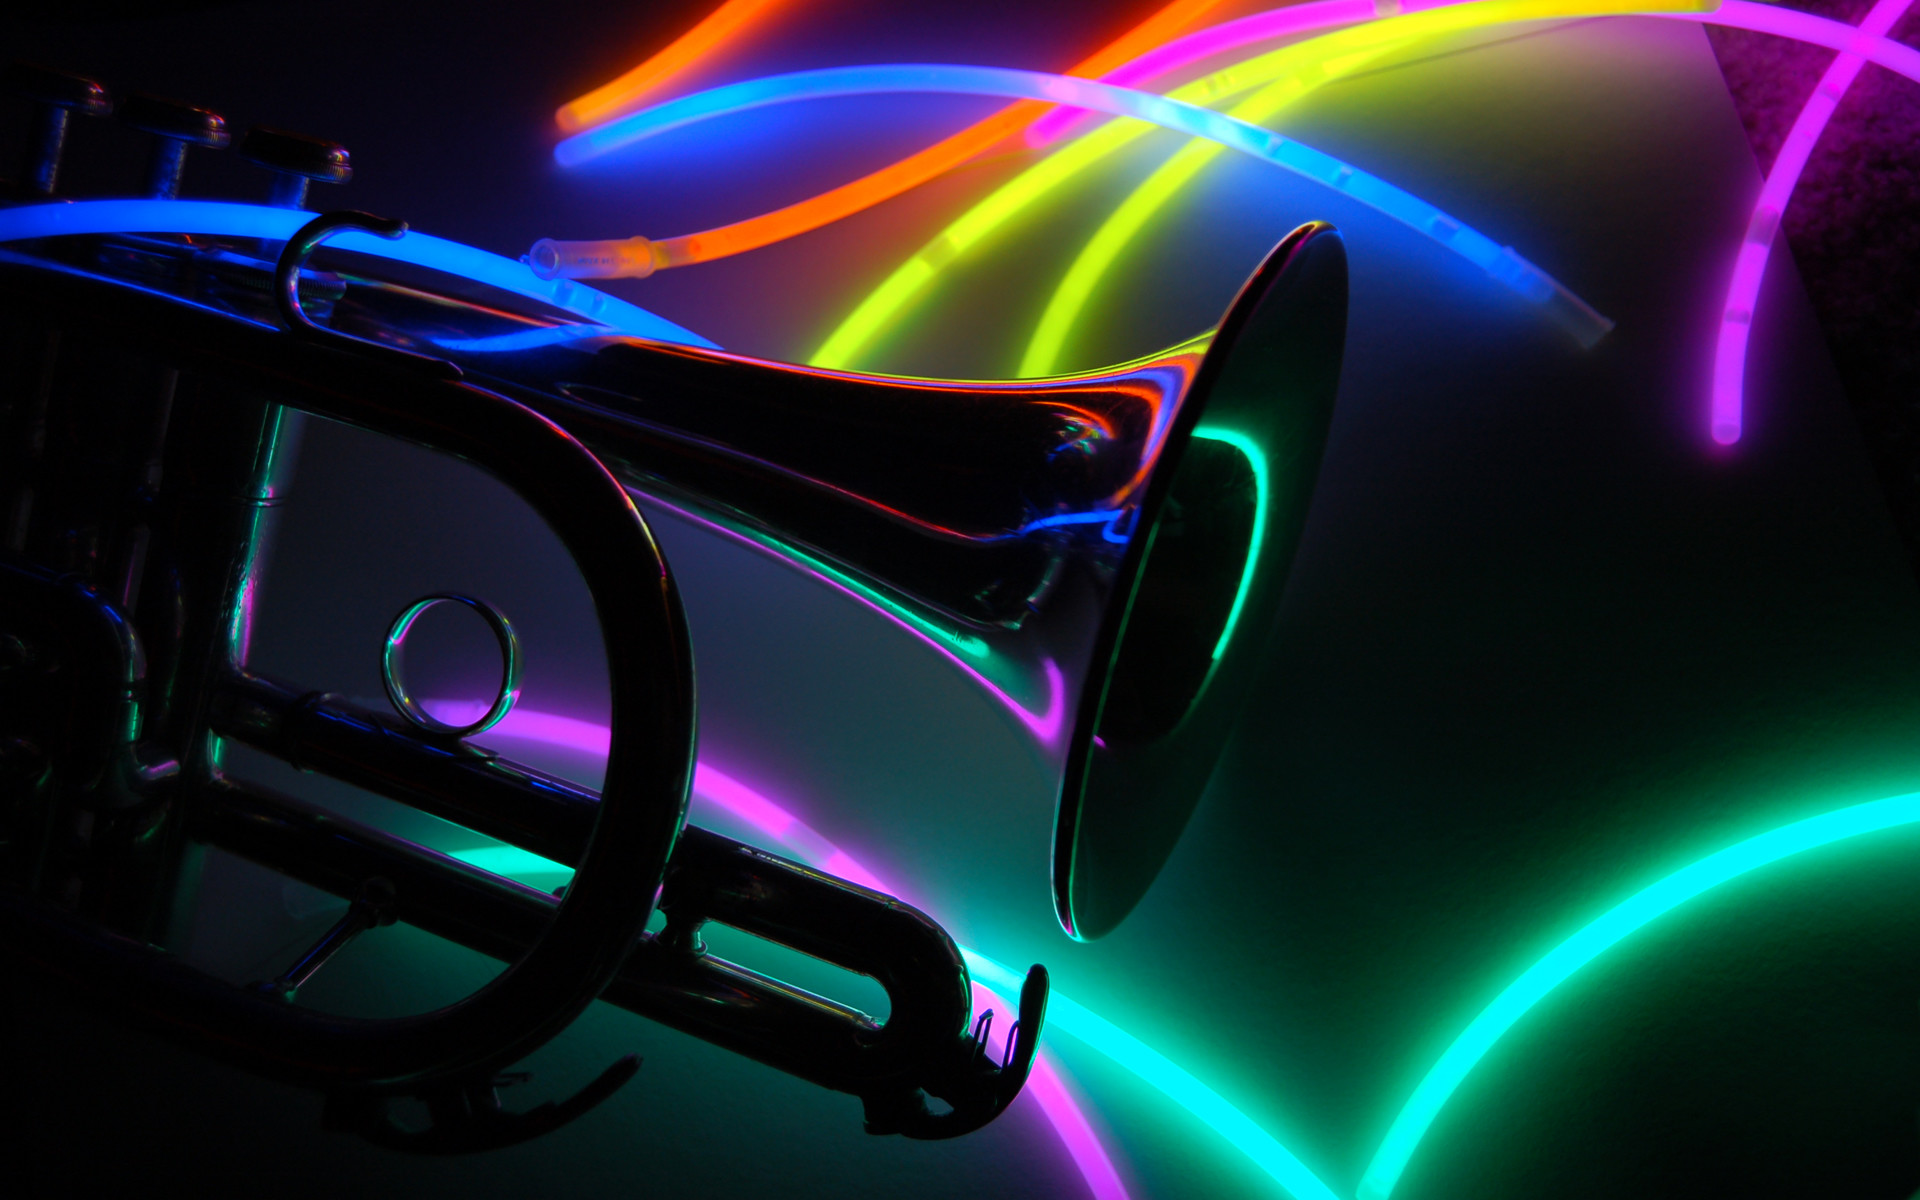 Neon Music Notes Wallpaper: Neon Animal Wallpapers (58+ Images